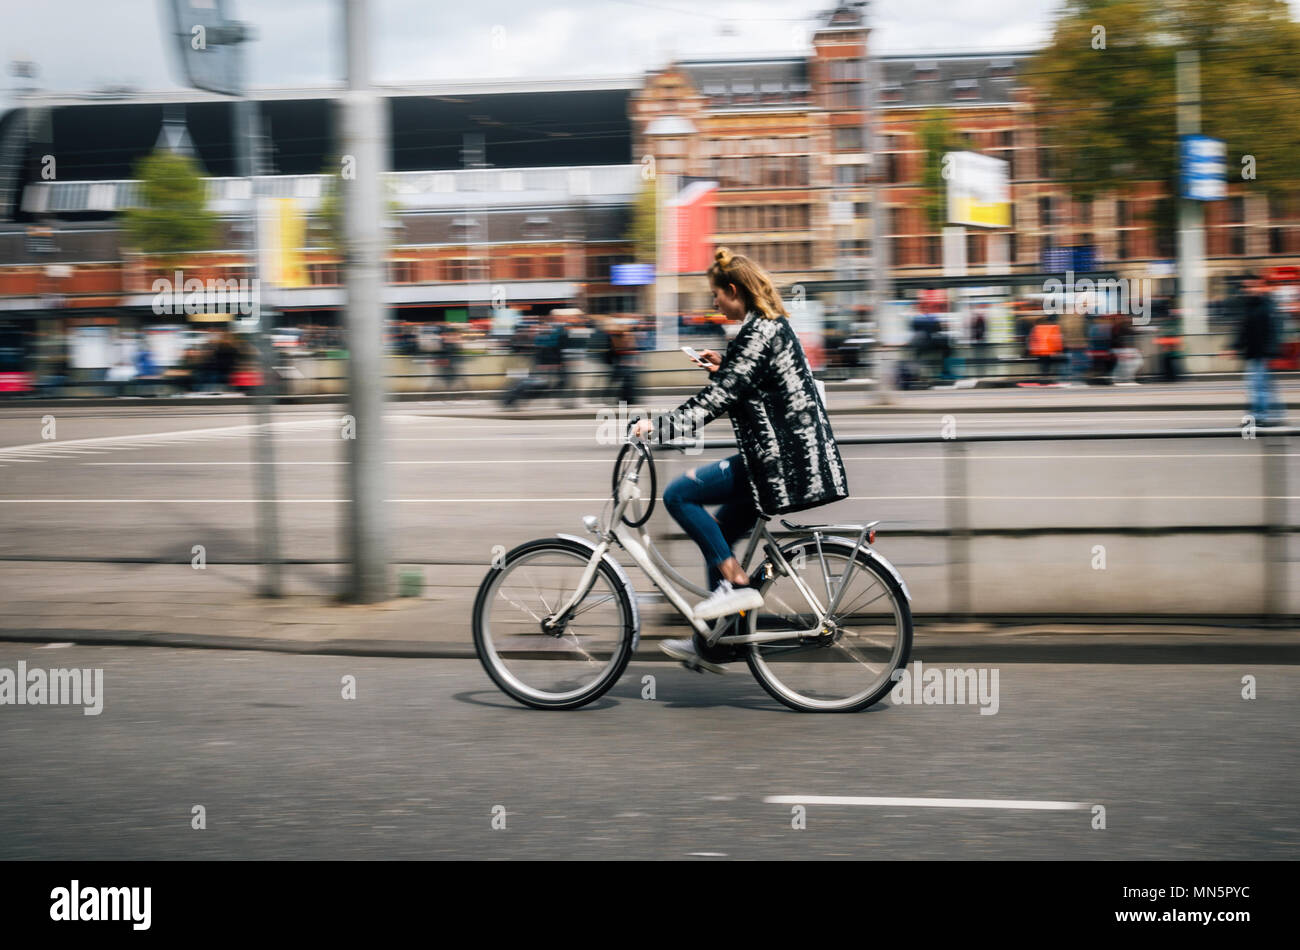 Amsterdam, Netherlands - 27 April, 2017: Young woman rides bicycle and looks in mobile phone holding in one hand. Street of Amsterdam, Netherlands. Mo - Stock Image